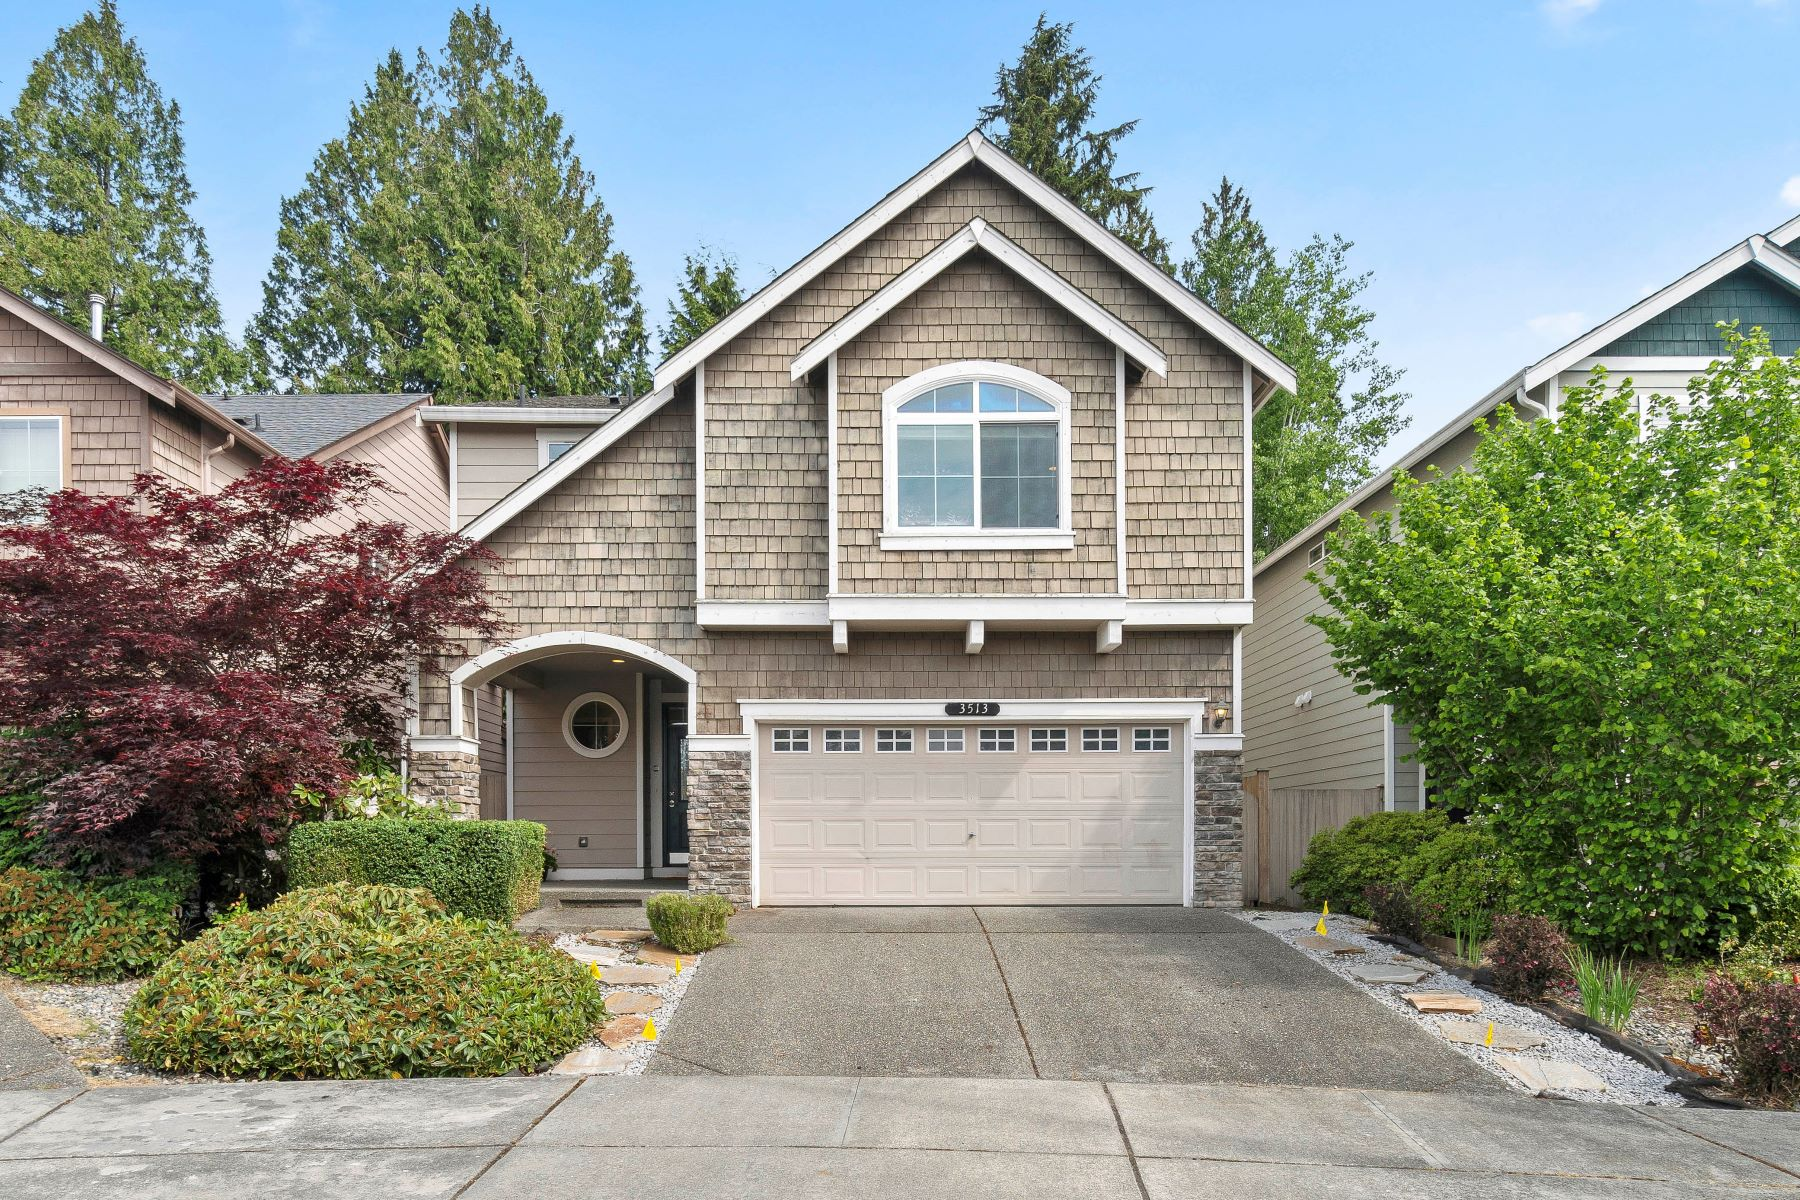 Single Family Homes for Sale at 3513 160th Place Southeast, Bothell, WA 98012 3513 160th Place SE Bothell, Washington 98012 United States